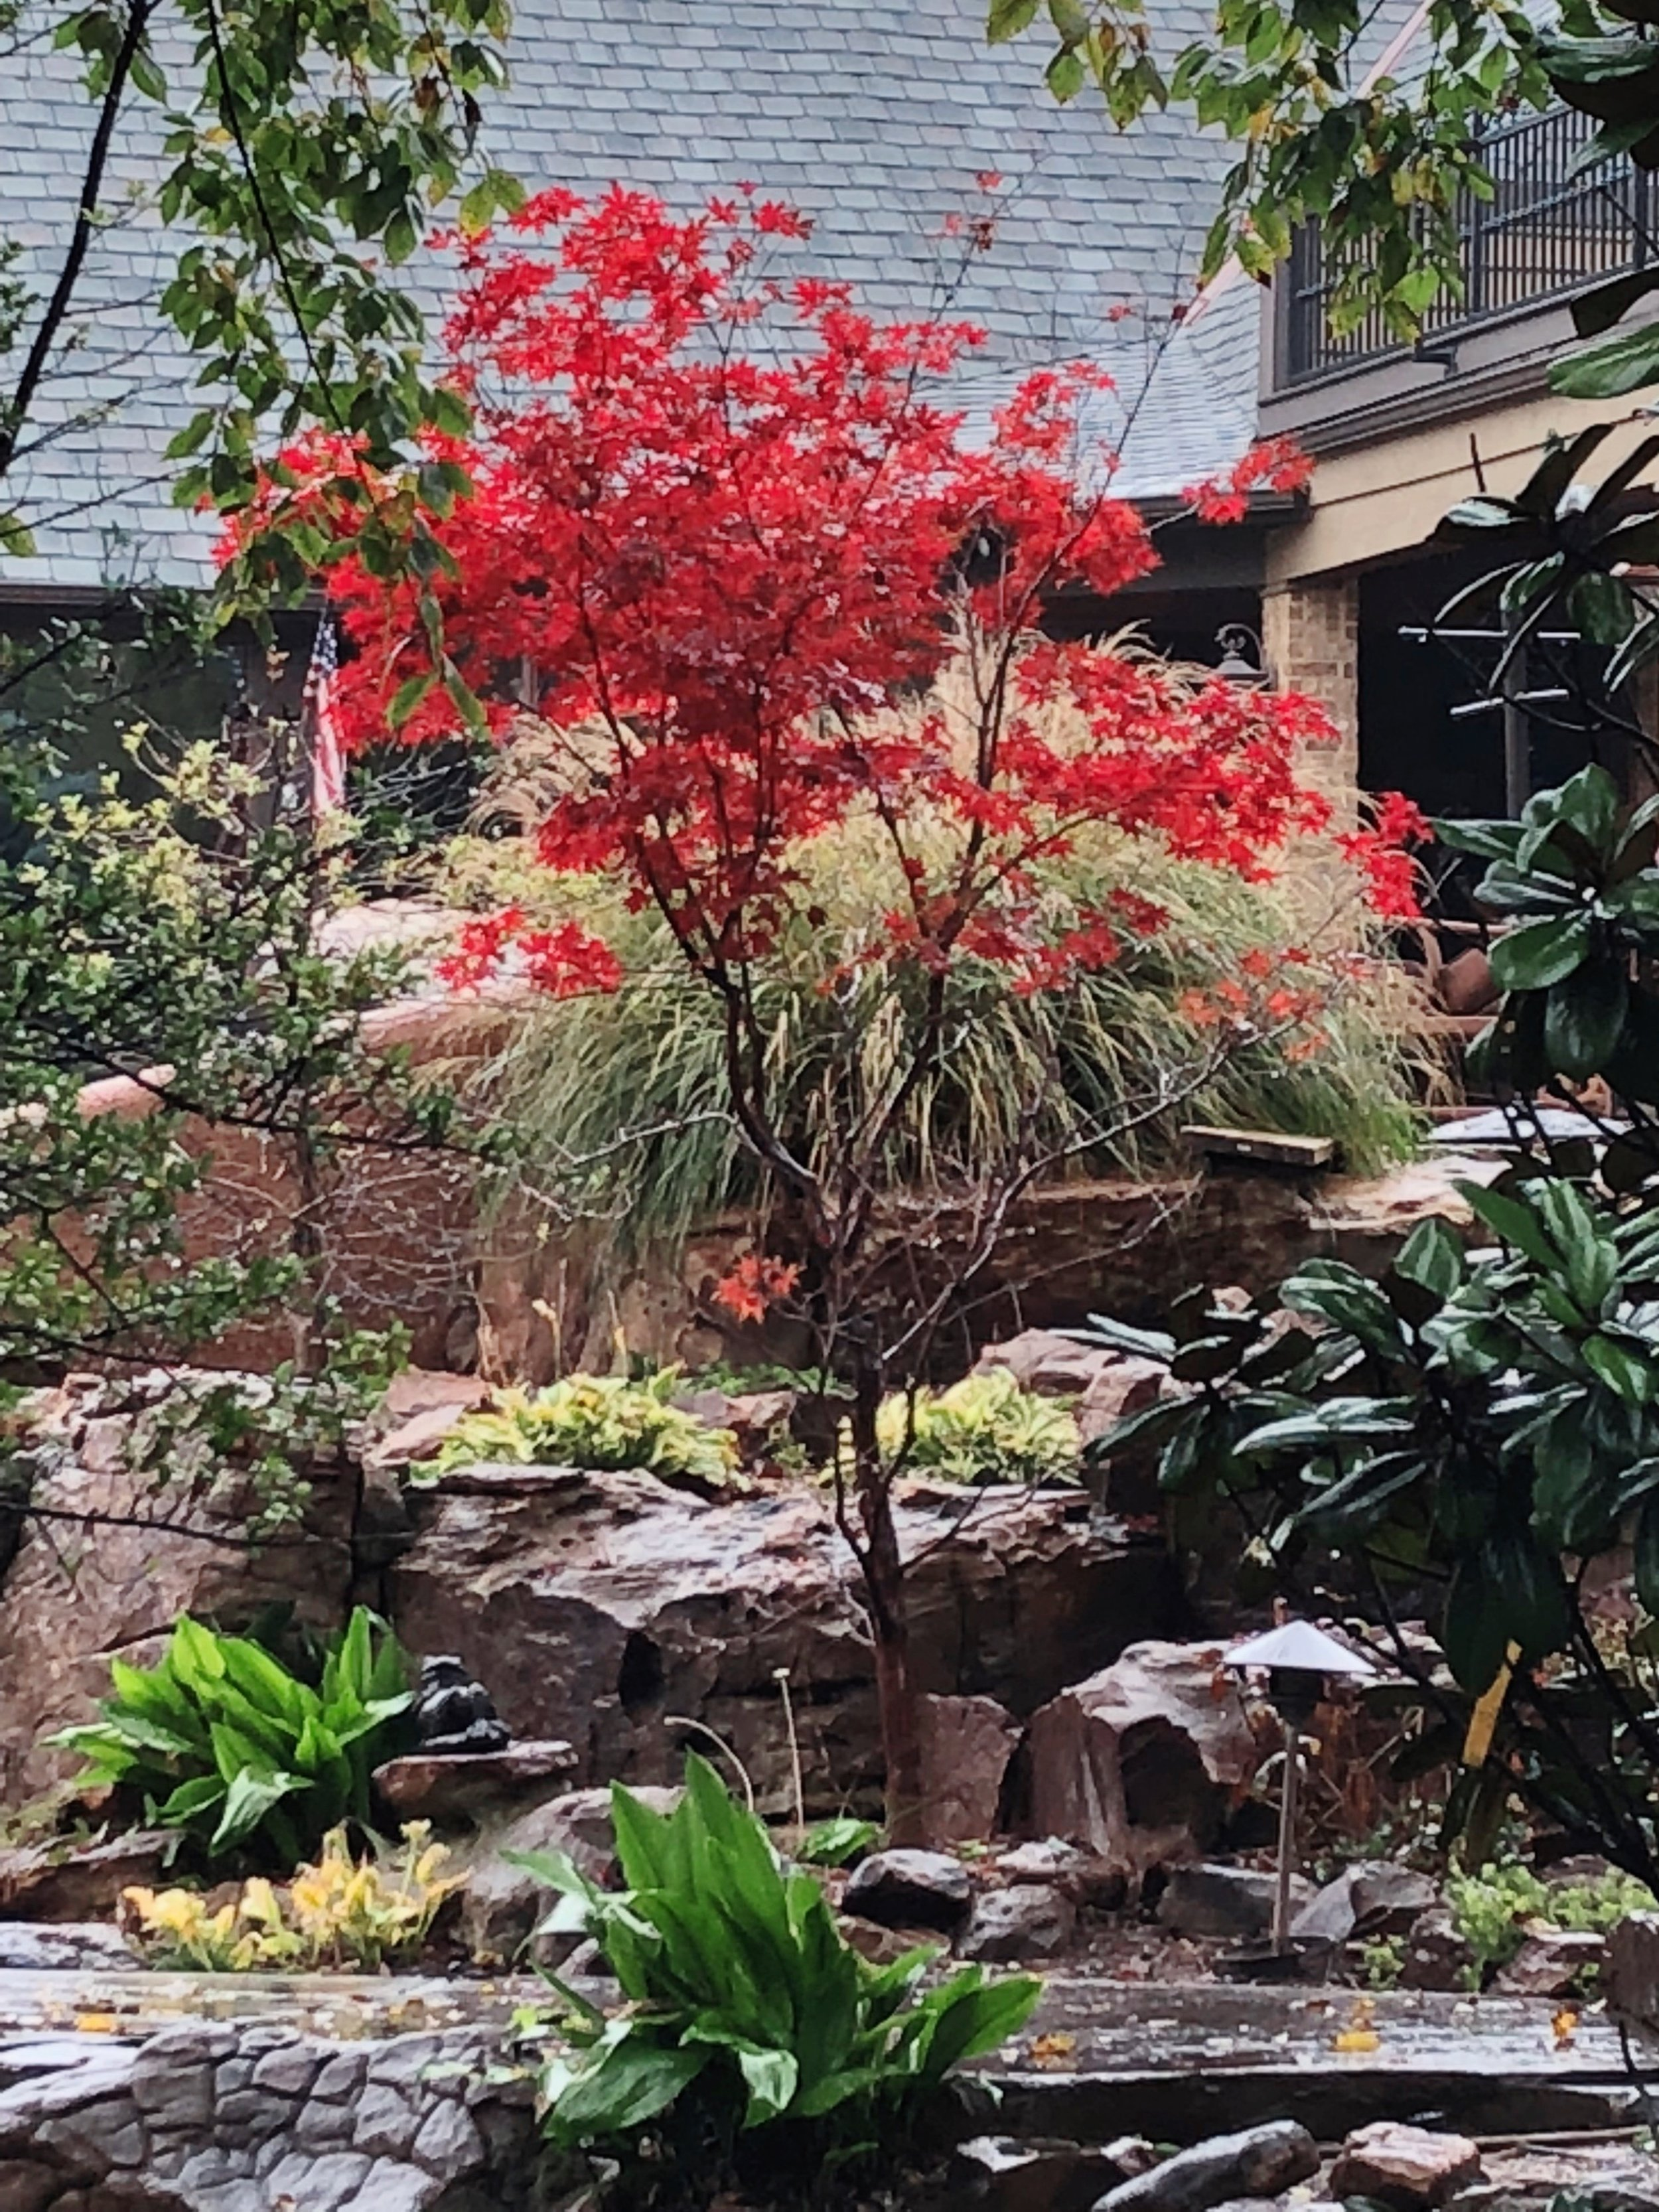 Japanese Maples return to bright red this month.